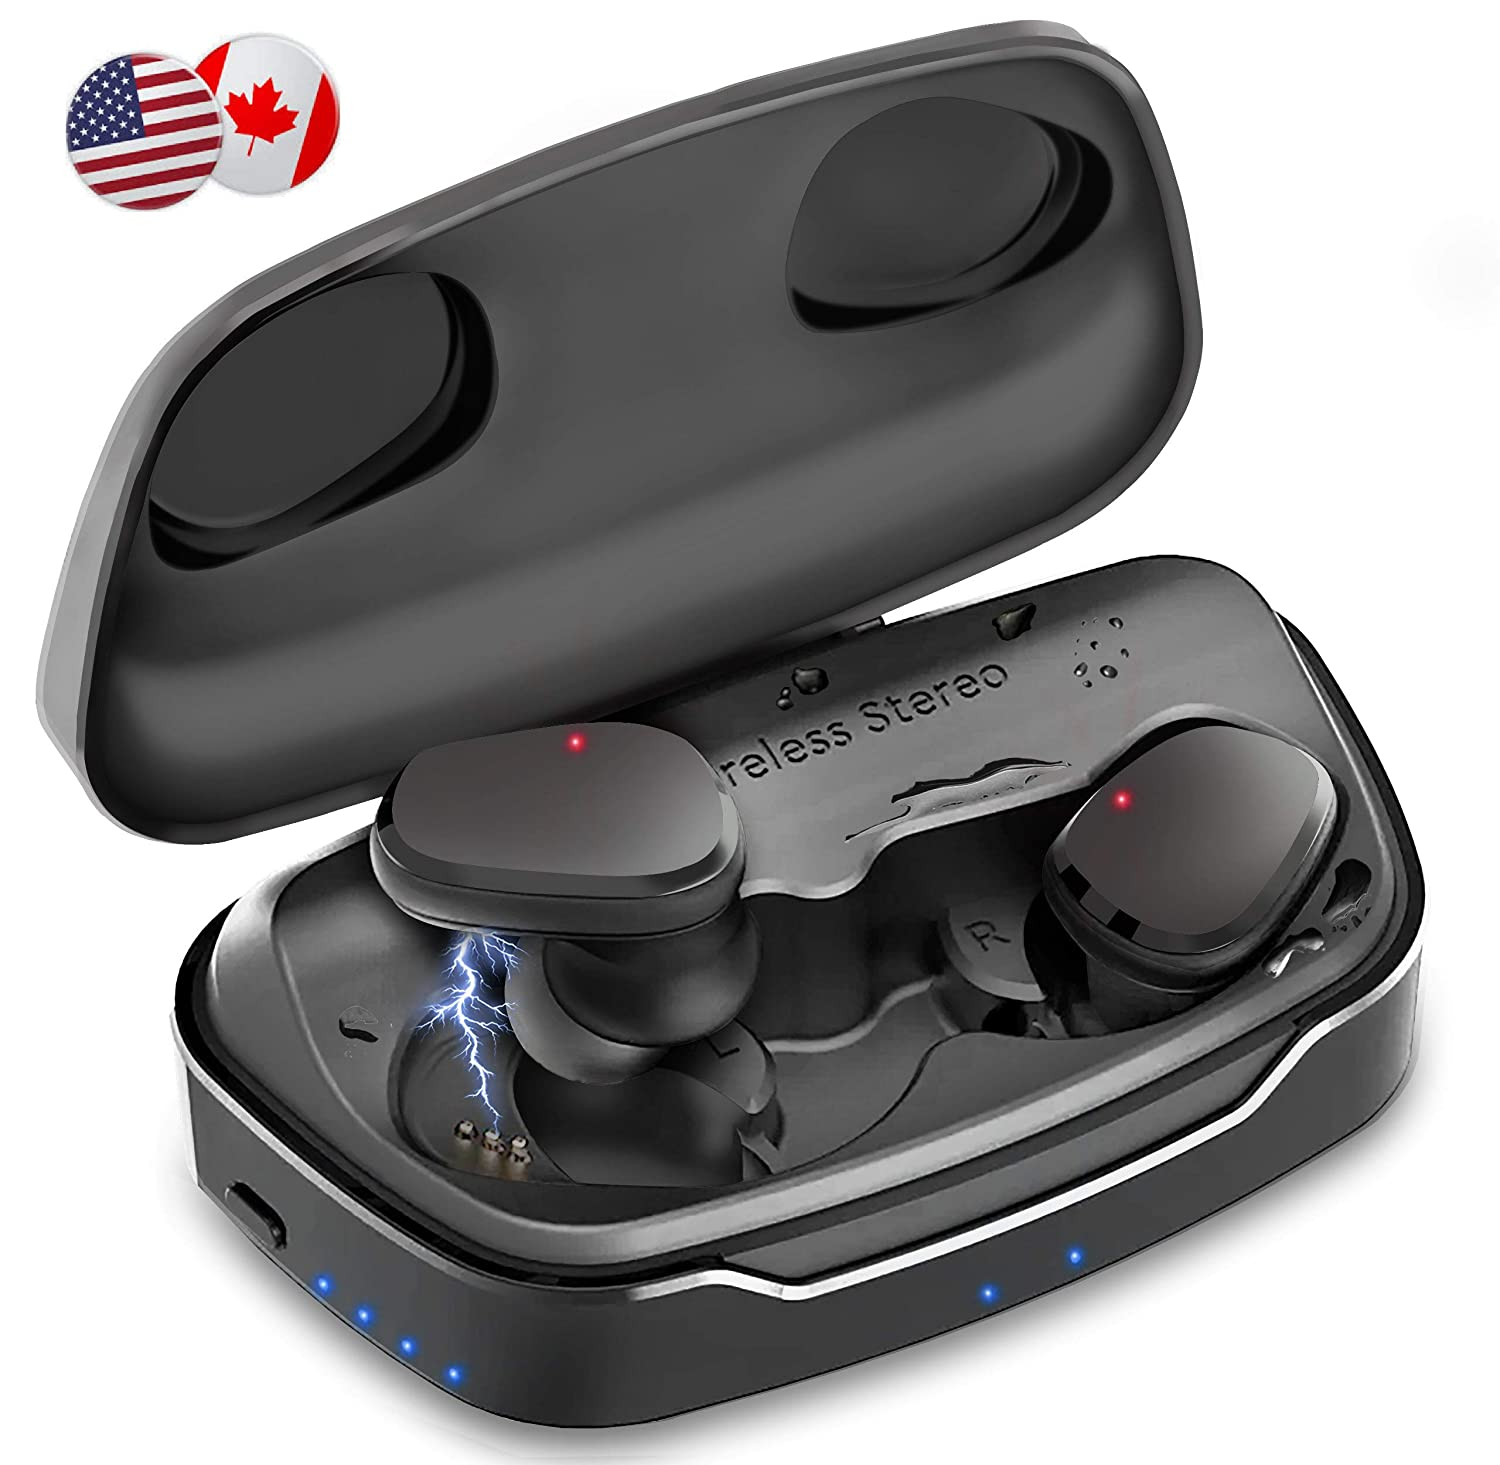 【New - 2019 Updated】 Wavebud Quasar WB-QSD06, TWS Bluetooth 5.0 True Wireless Stereo Earbuds Headphones, Waterproof, HD Bass 【5 Sound Settings】,【Sport FIT】, Mic, 【90-100Hr 】 use, 【Power Bank】 Feature